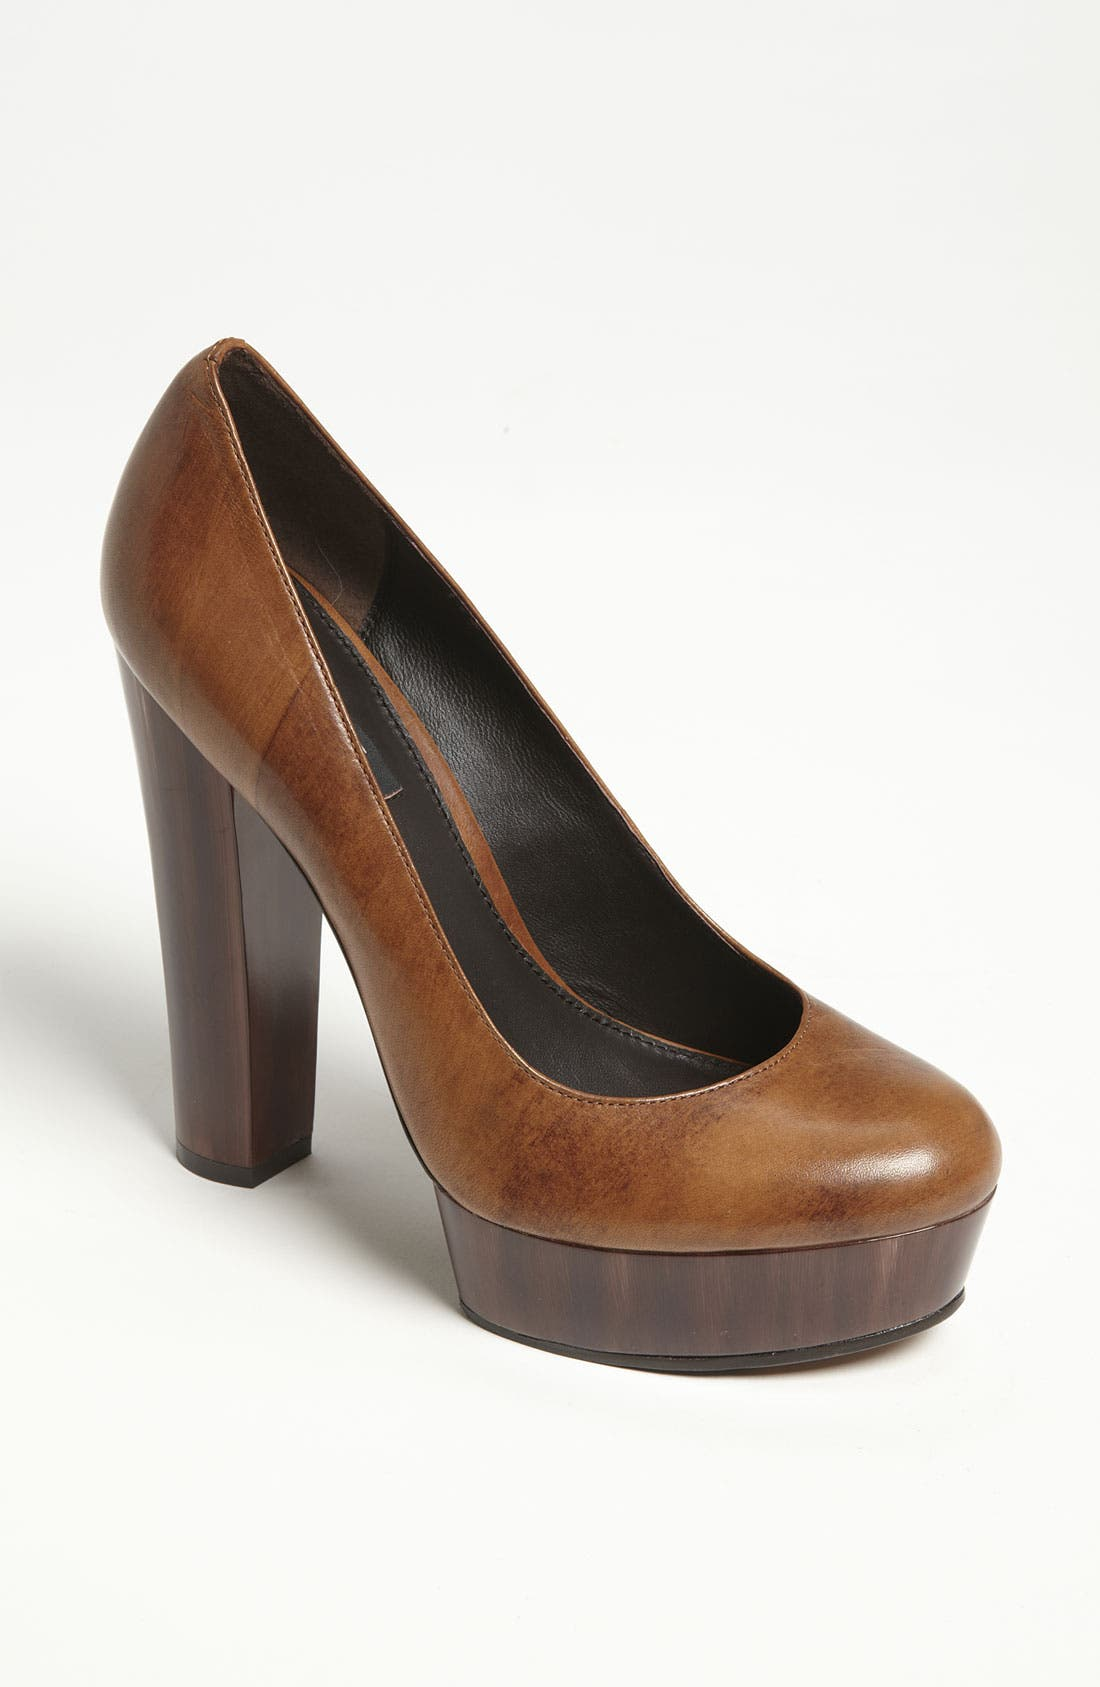 Alternate Image 1 Selected - Rachel Zoe 'Leila' Pump